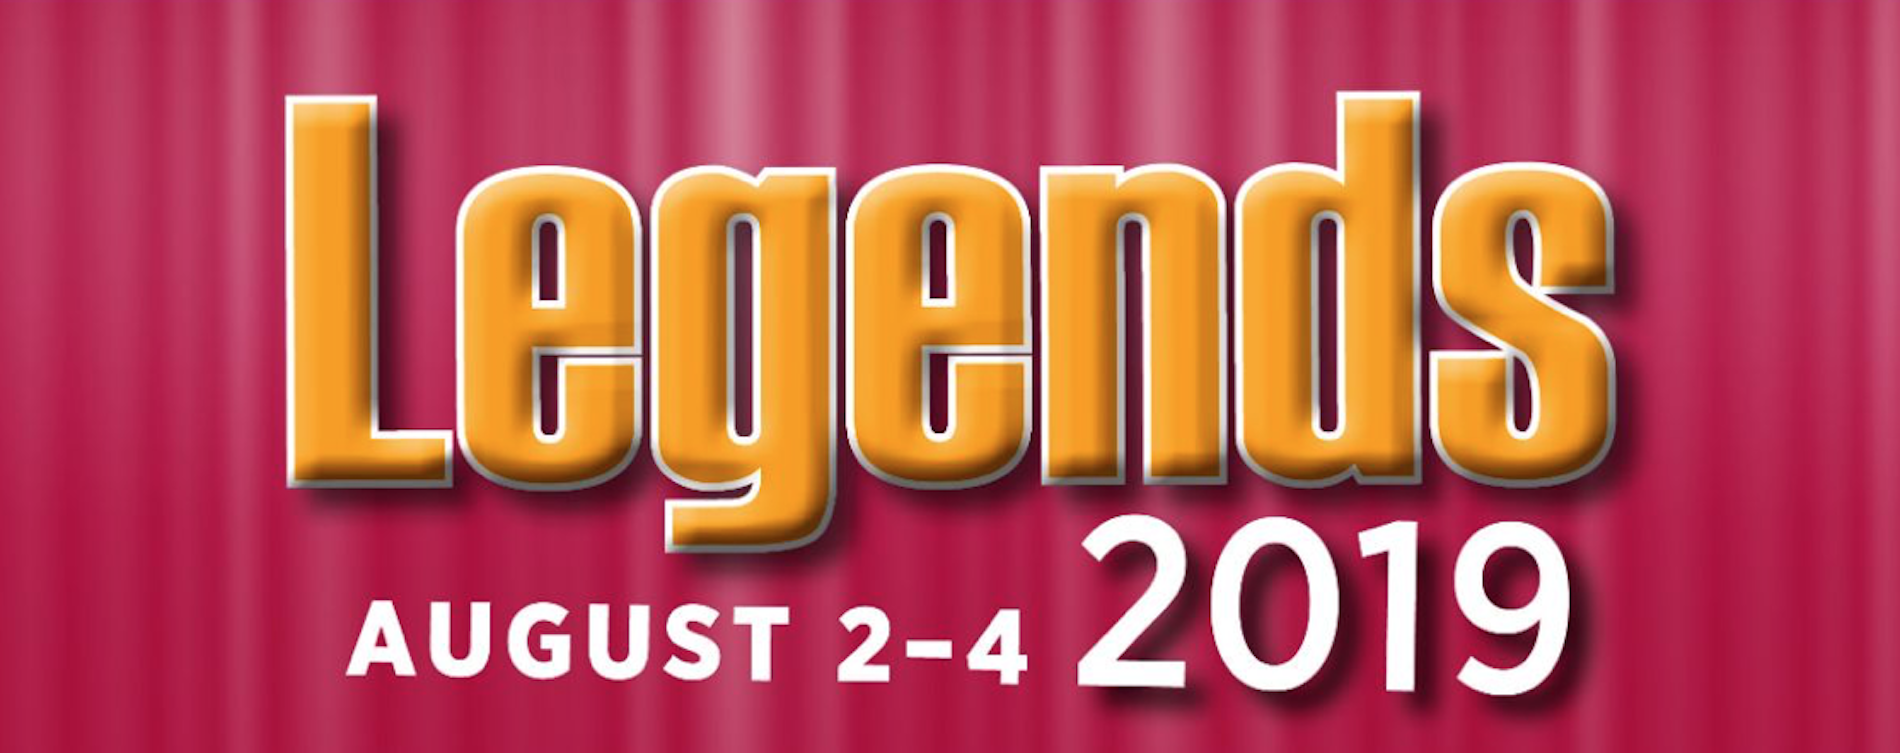 Legends Weekend Registration is Now Open!